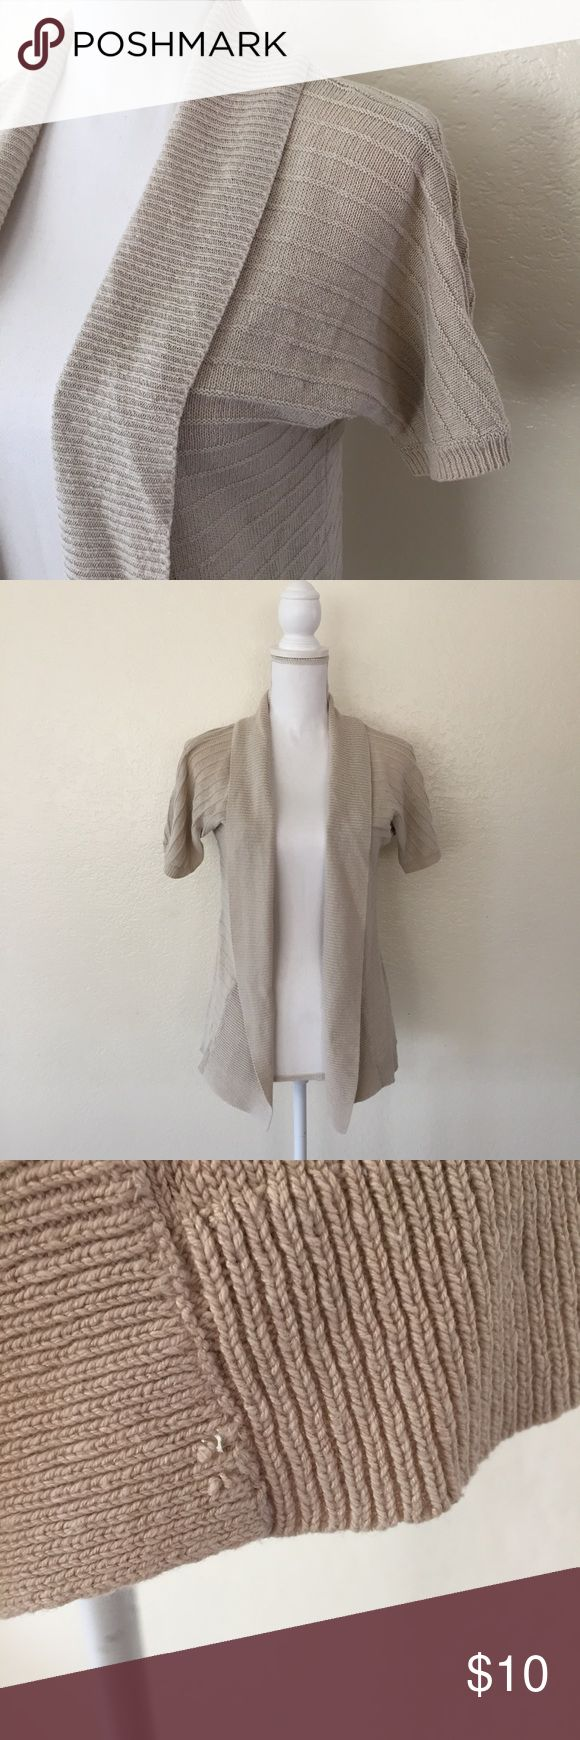 """Ann Taylor Short Sleeved Cardigan Short Sleeve Beige Open Cardigan by Ann Taylor in Size XS A neutral cardigan perfect for work. Good condition except for small hole on bottom left. Please see pictures for more details.  Approximate Flat Measurements Bust 17"""" Length 24.5"""" Ann Taylor Sweaters Cardigans"""